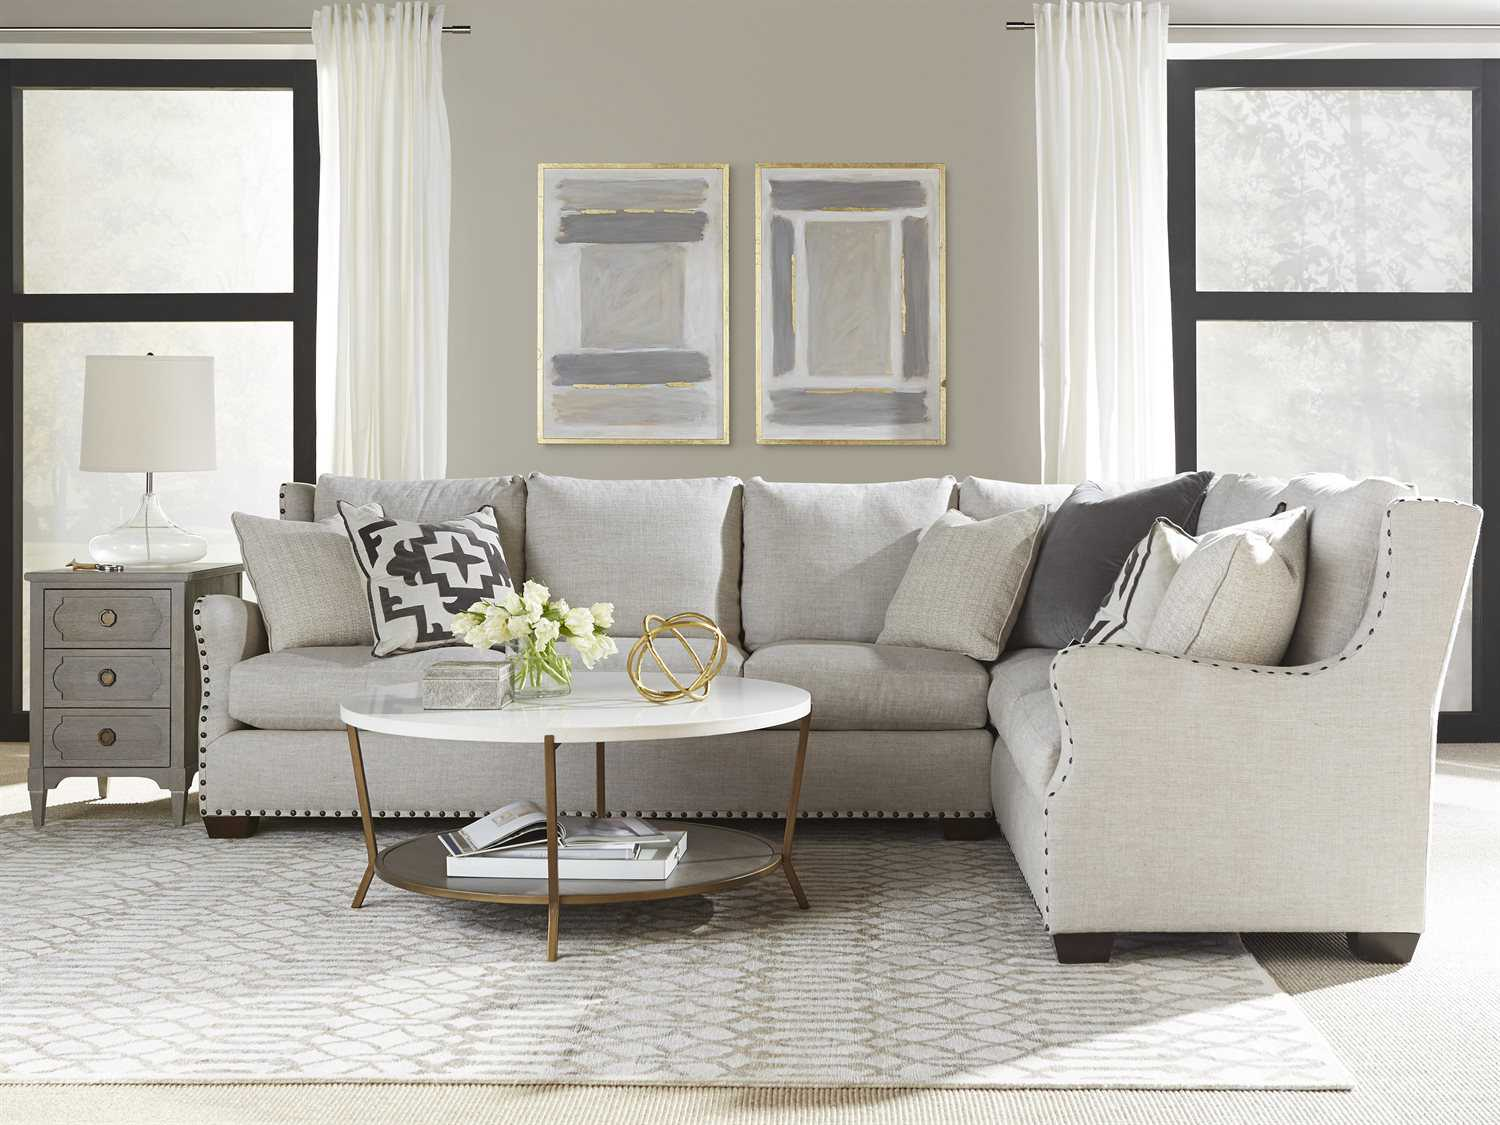 Universal furniture connor sectional right arm facing living room set uf407512rac100set for Living room sets san antonio tx